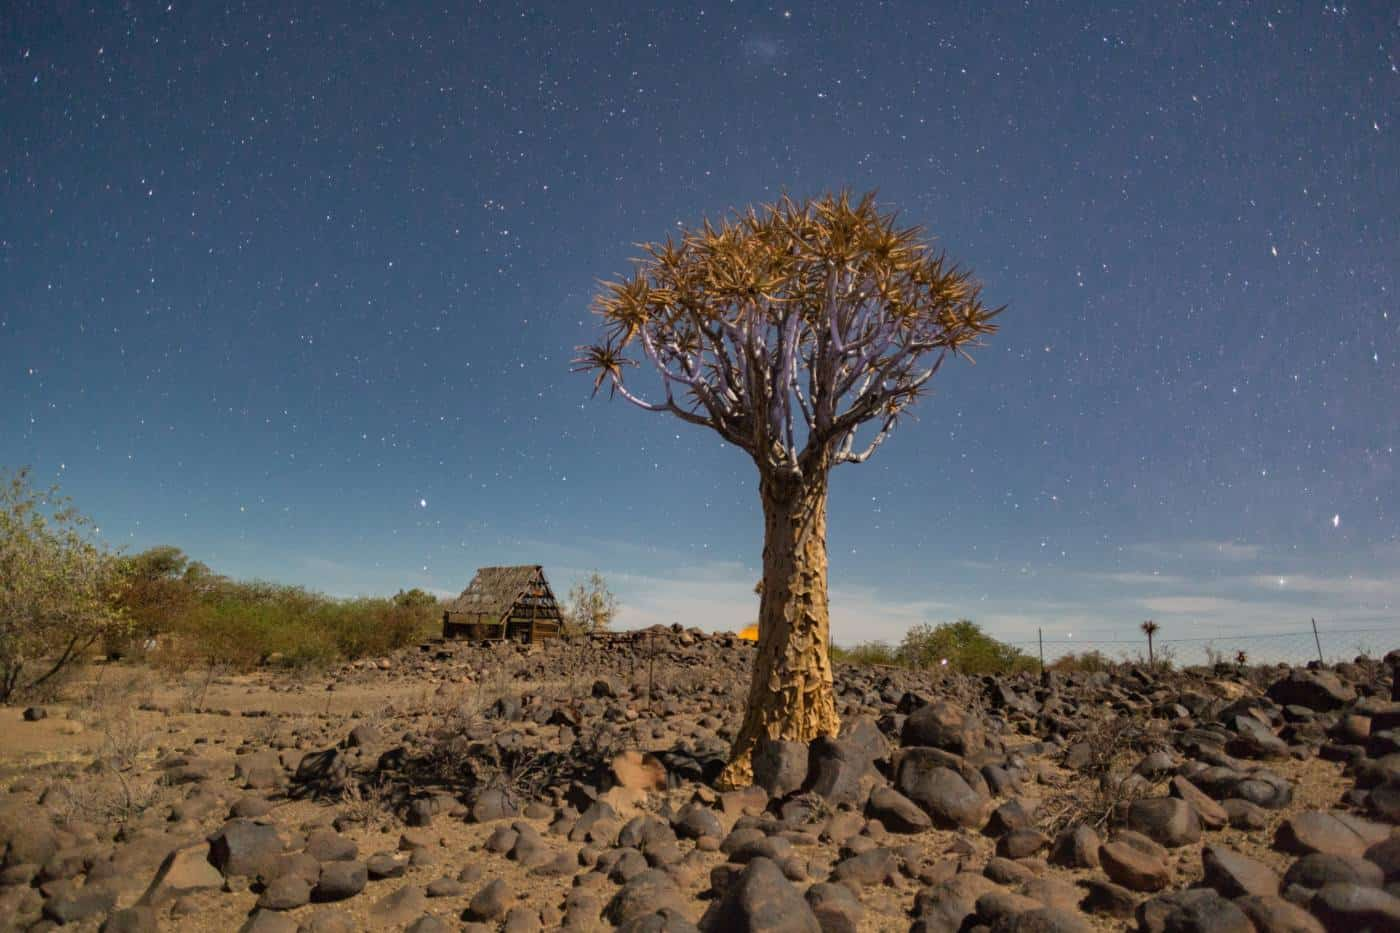 Quiver Tree Namibia